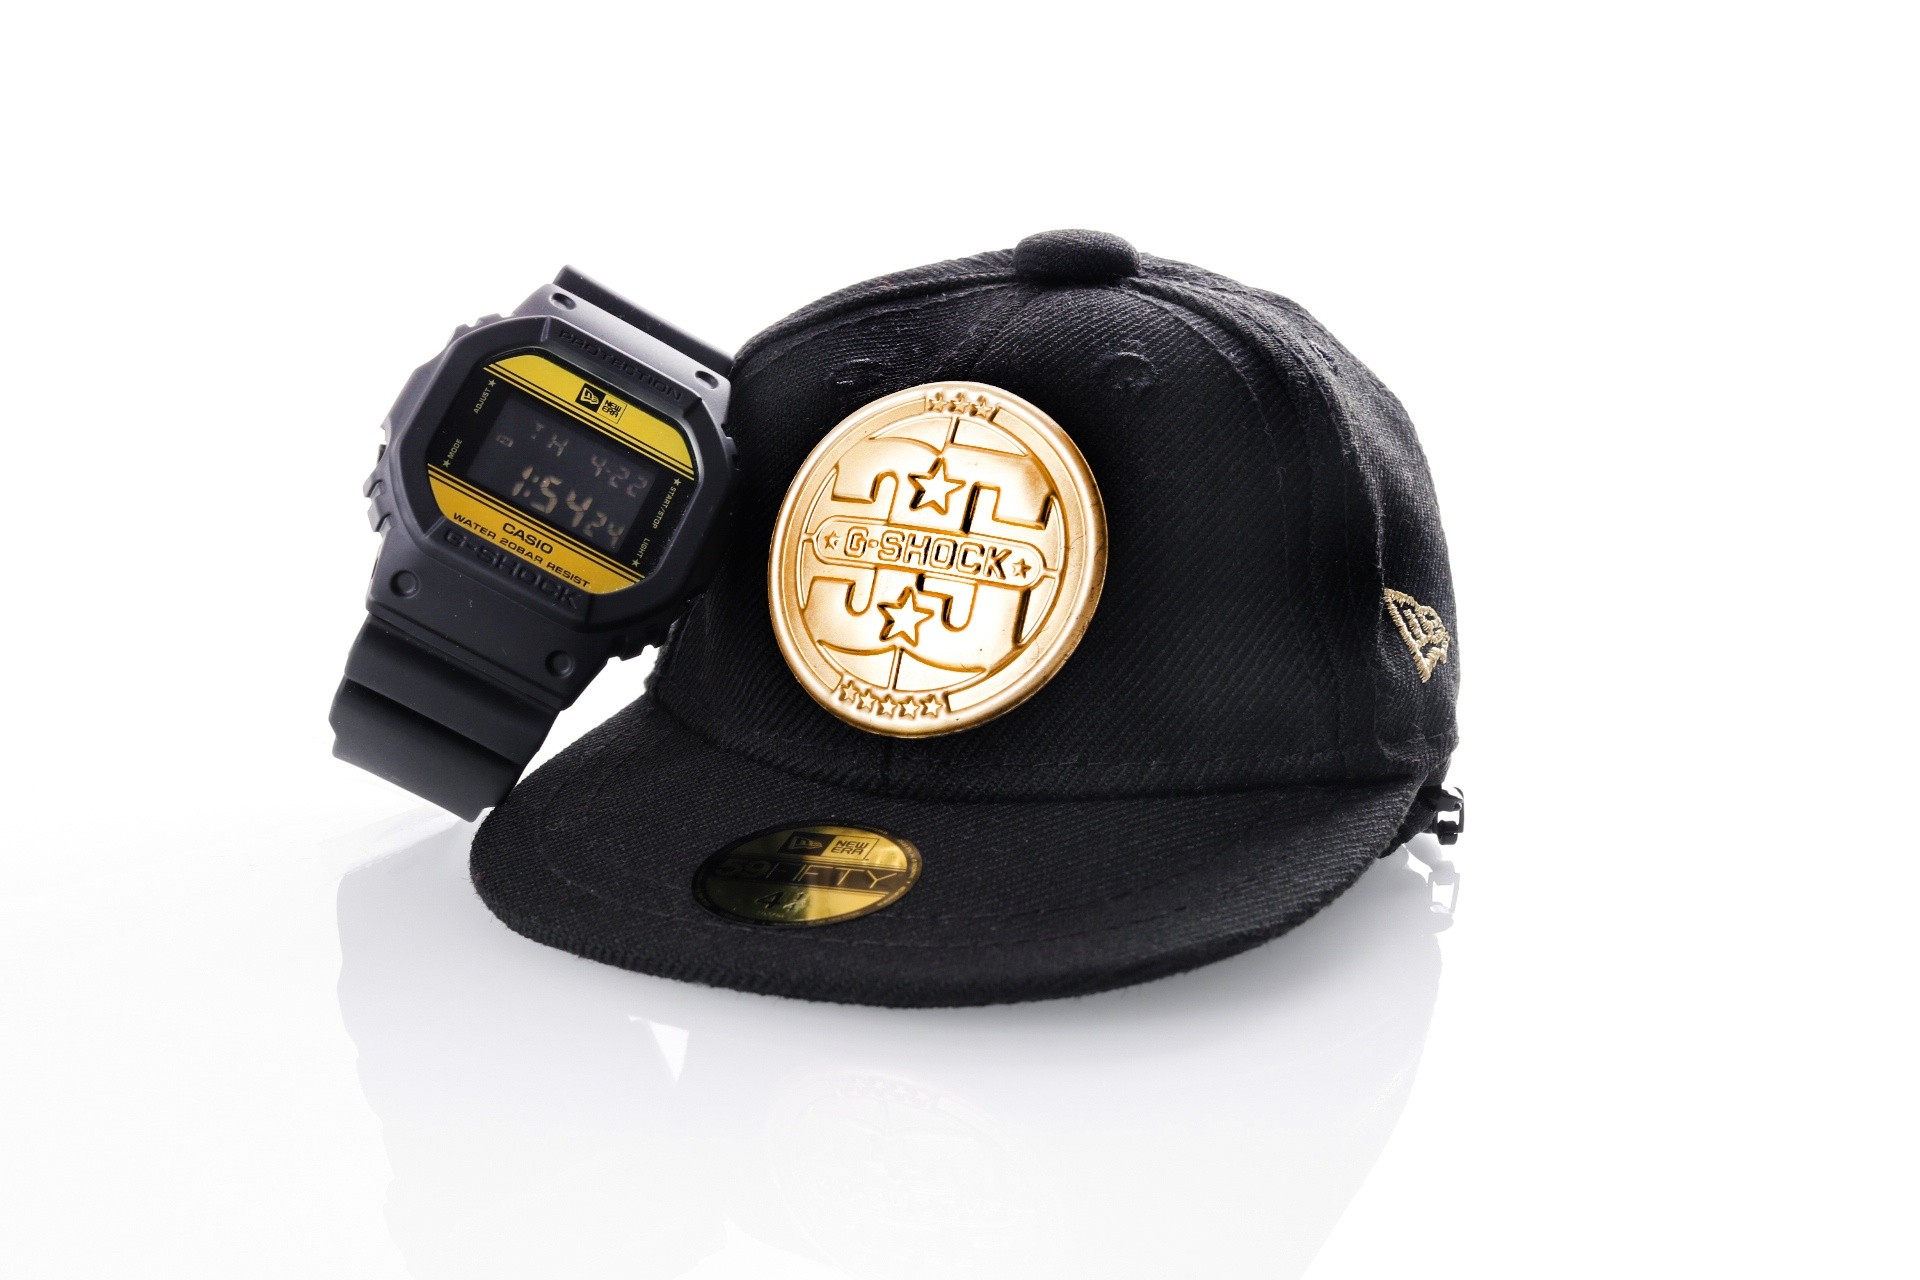 Foto van Casio G-shock New Era Collab DW-5600NE-1ER Horloge Black Gold